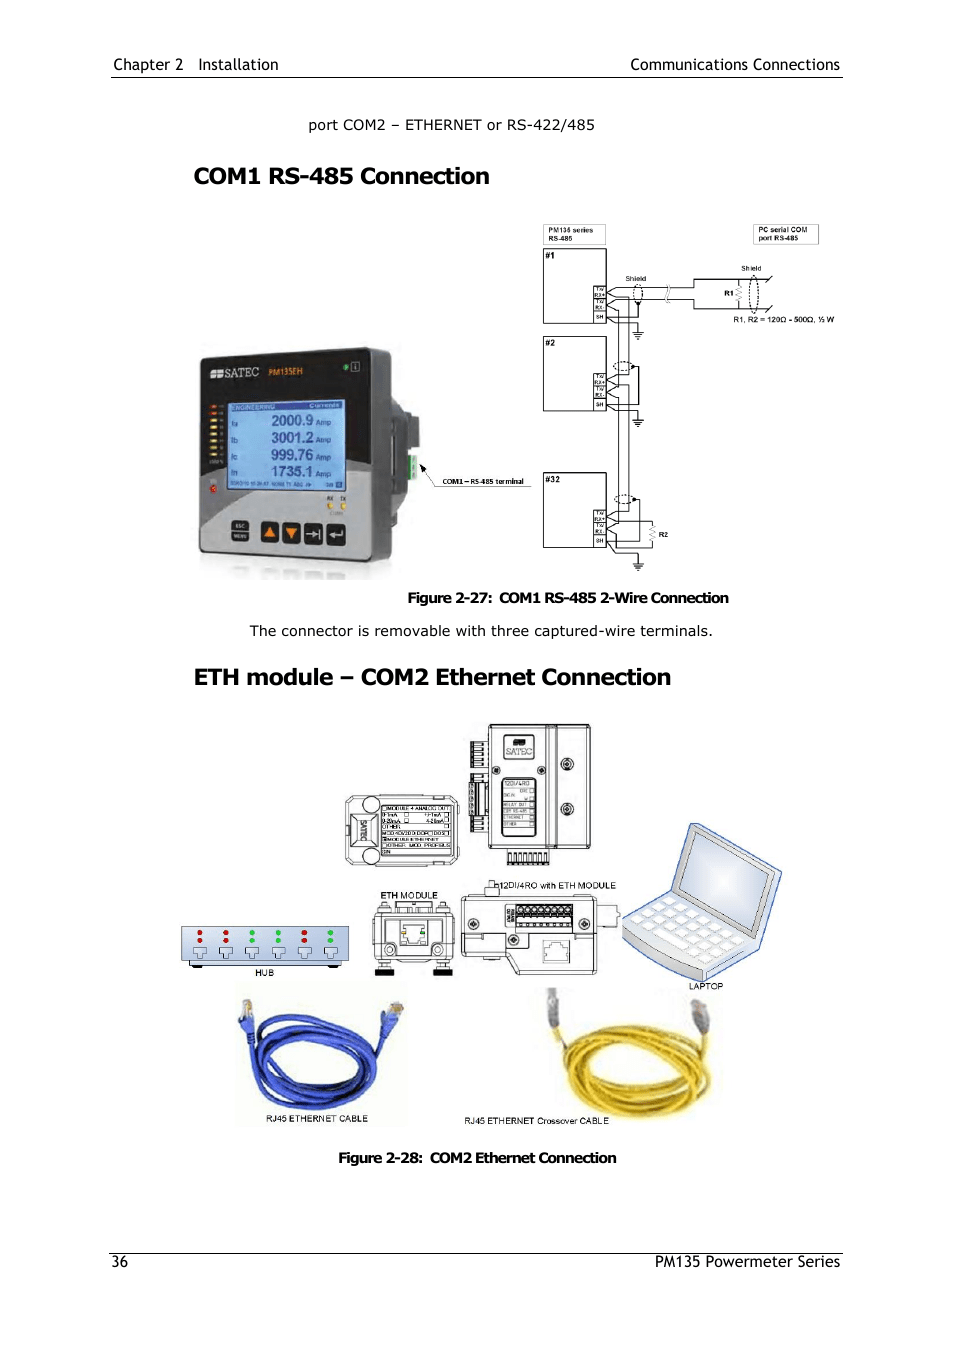 medium resolution of com1 rs 485 connection eth module com2 ethernet connection satec pm135 manual user manual page 36 166